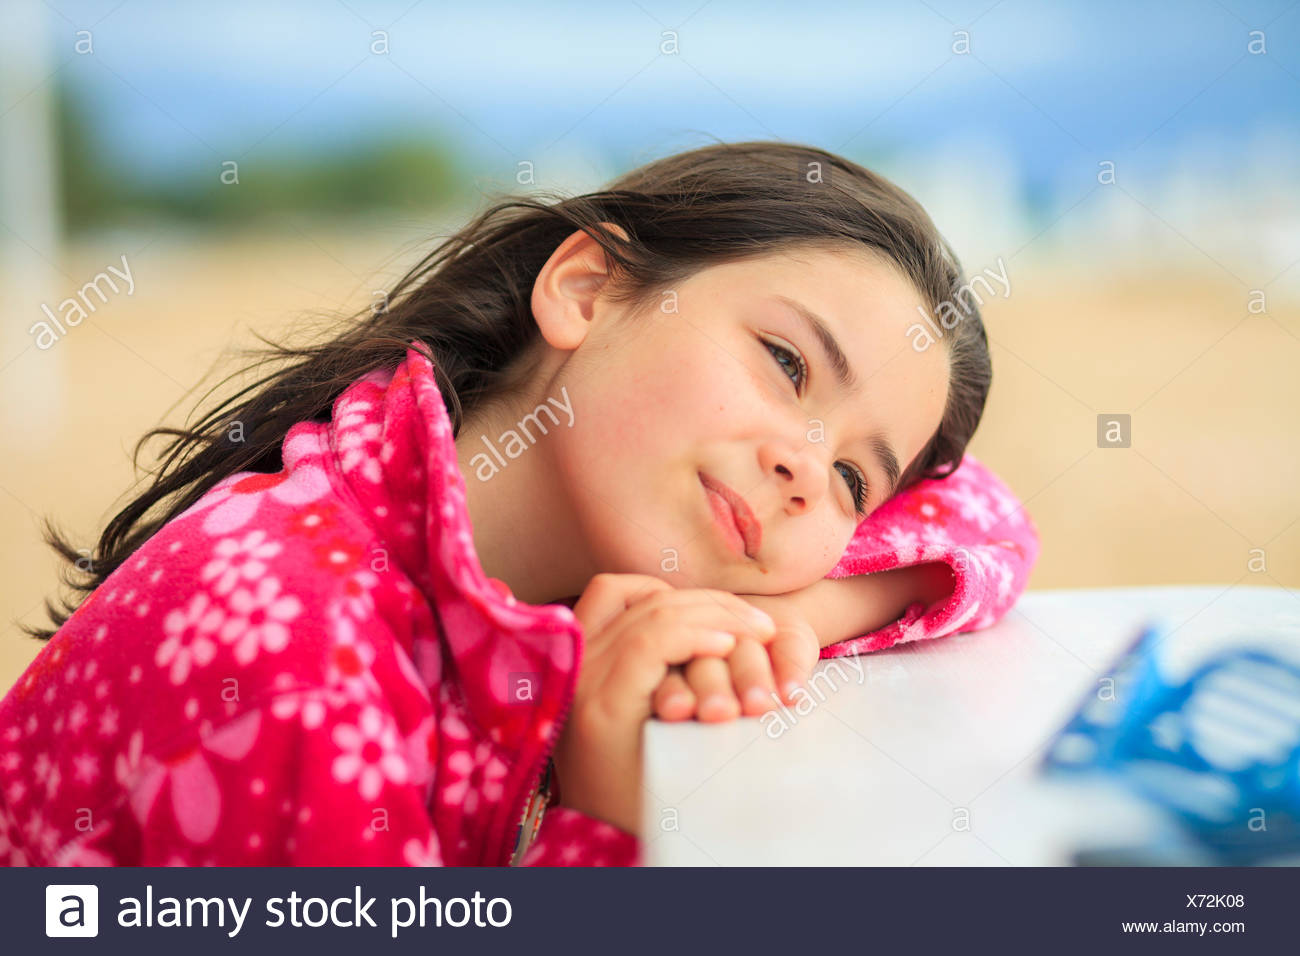 Girl resting her head on a table at the beach - Stock Image